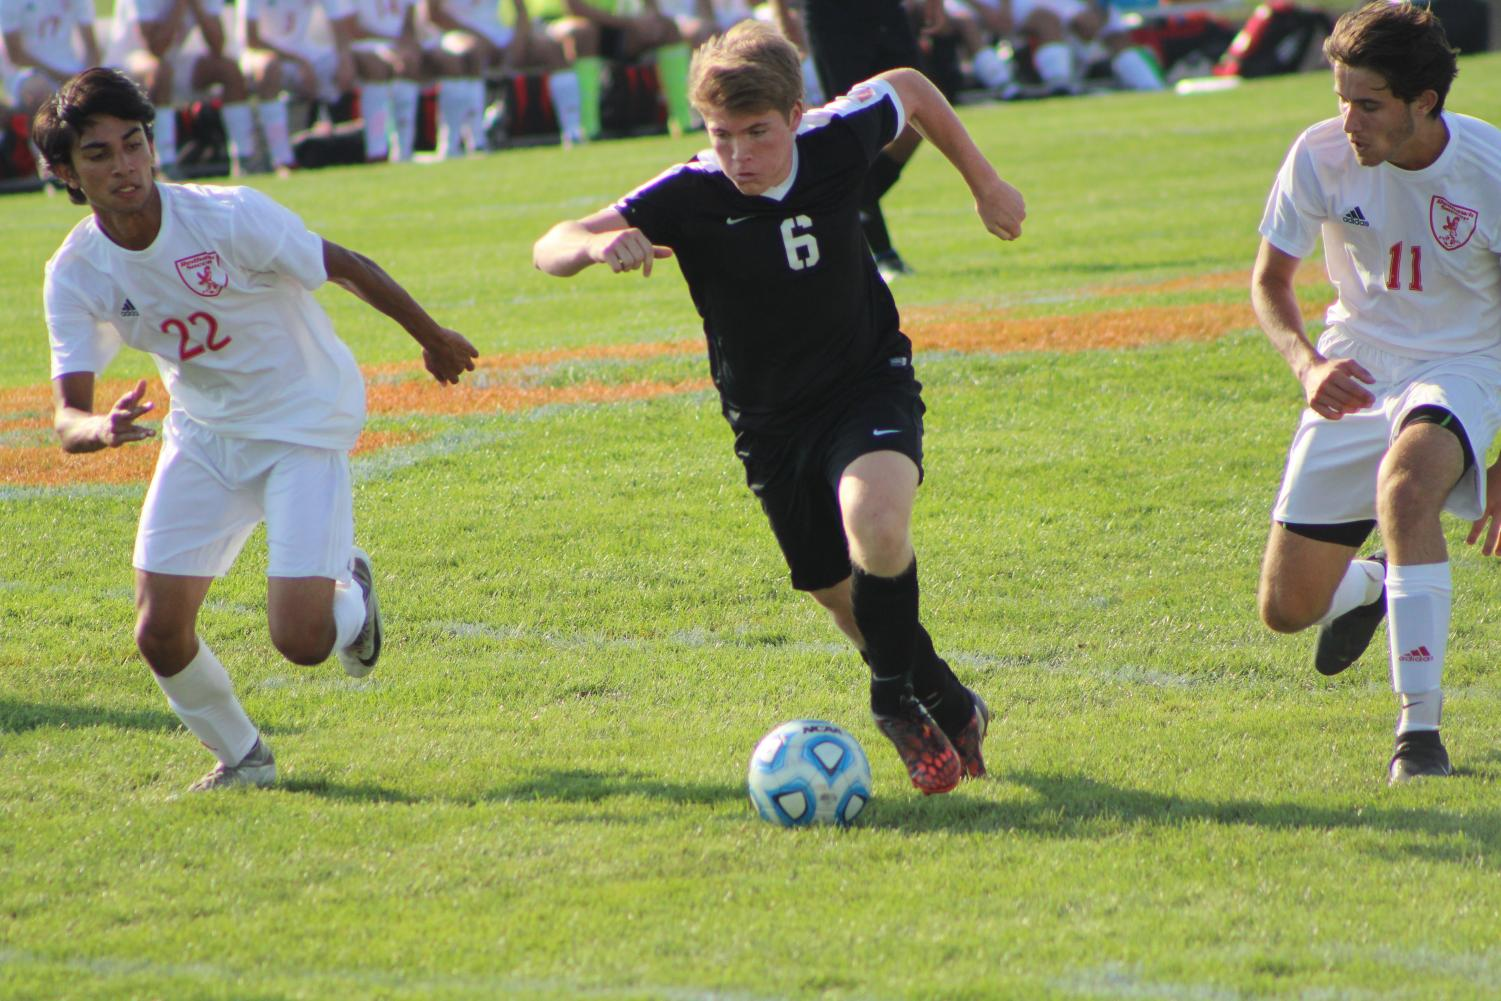 Junior Ryan Felgenhauer takes the ball against Naperville Central on Aug. 23.  The game ended in a 1-1 tie.